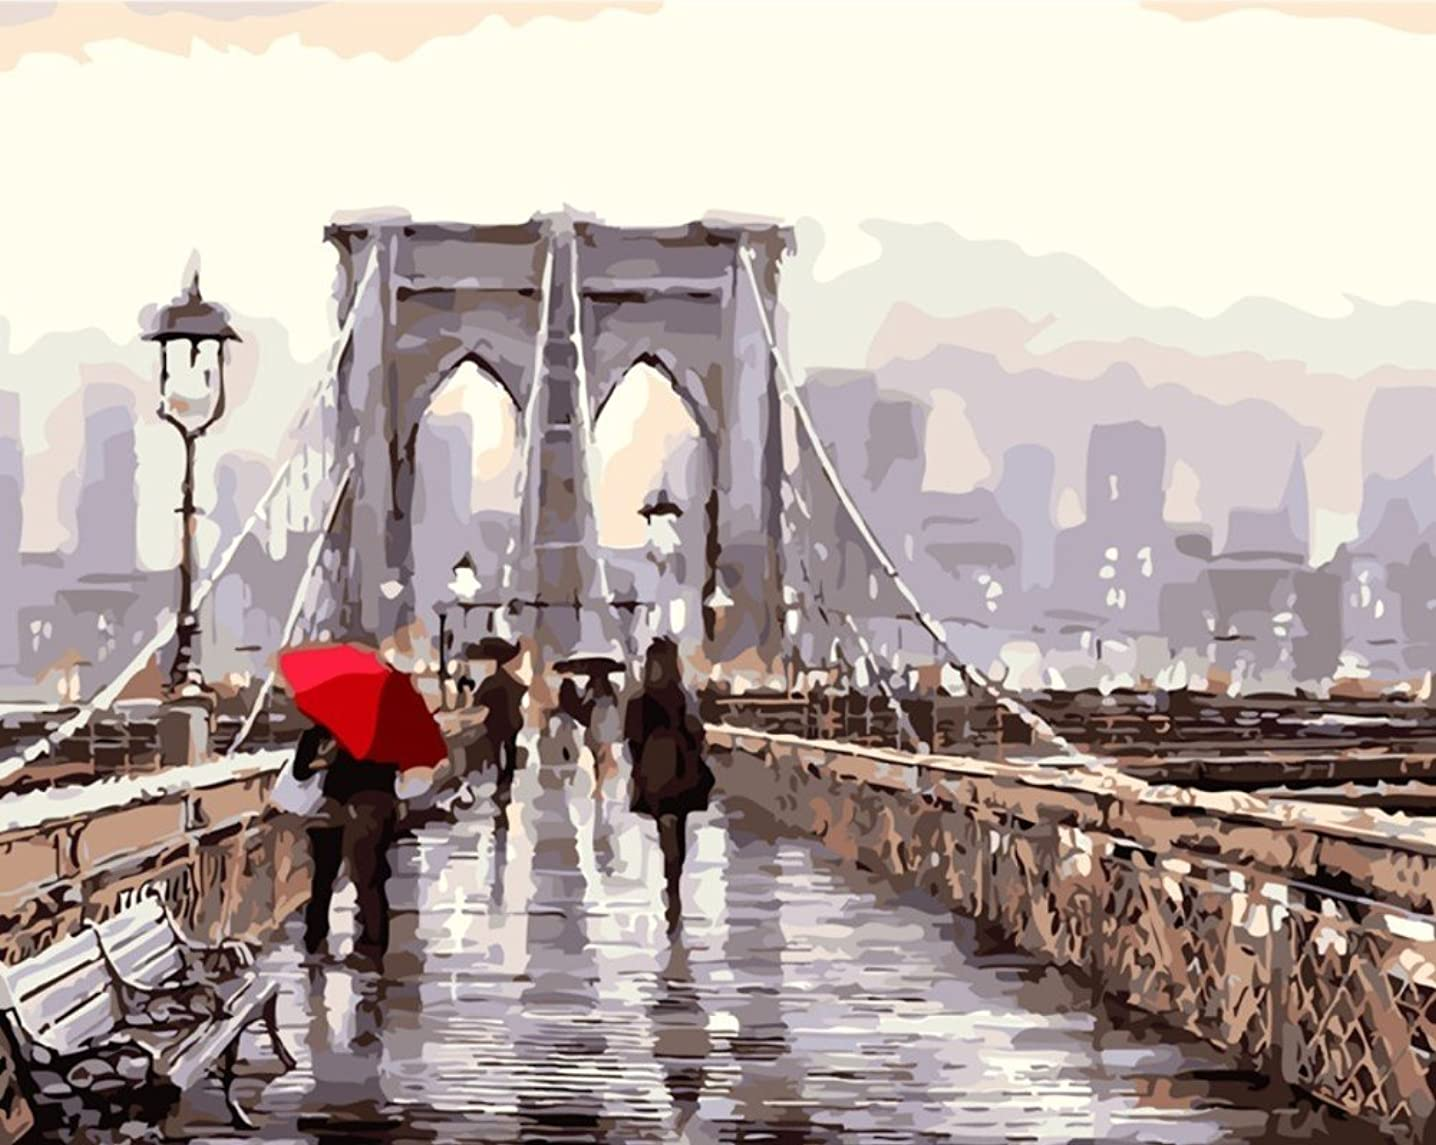 YEESAM Art New DIY Paint by Number Kits for Adults Kids Beginner - Romantic Street, Brooklyn Bridge View 16x20 inch Linen Canvas - Stress Less Number Painting Gifts (with Frame)